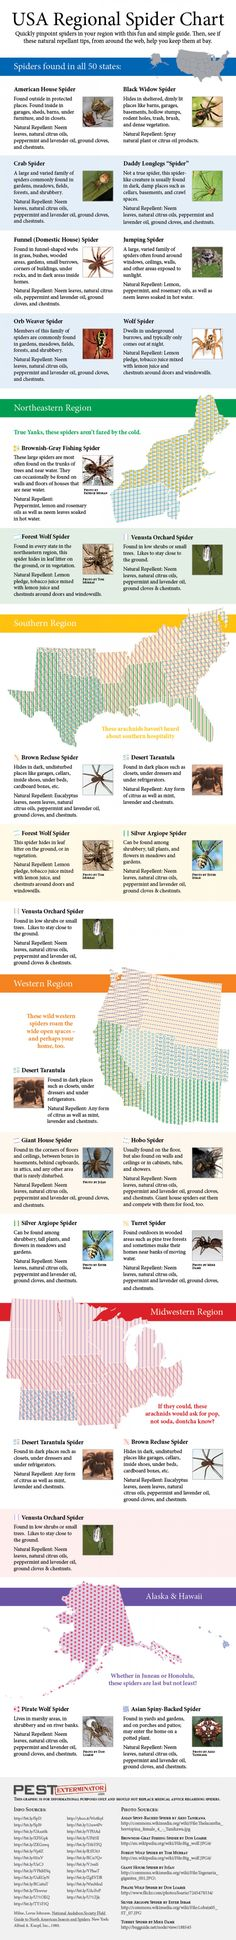 House Spider Identification Chart | USA Spider Identification Chart Infographic